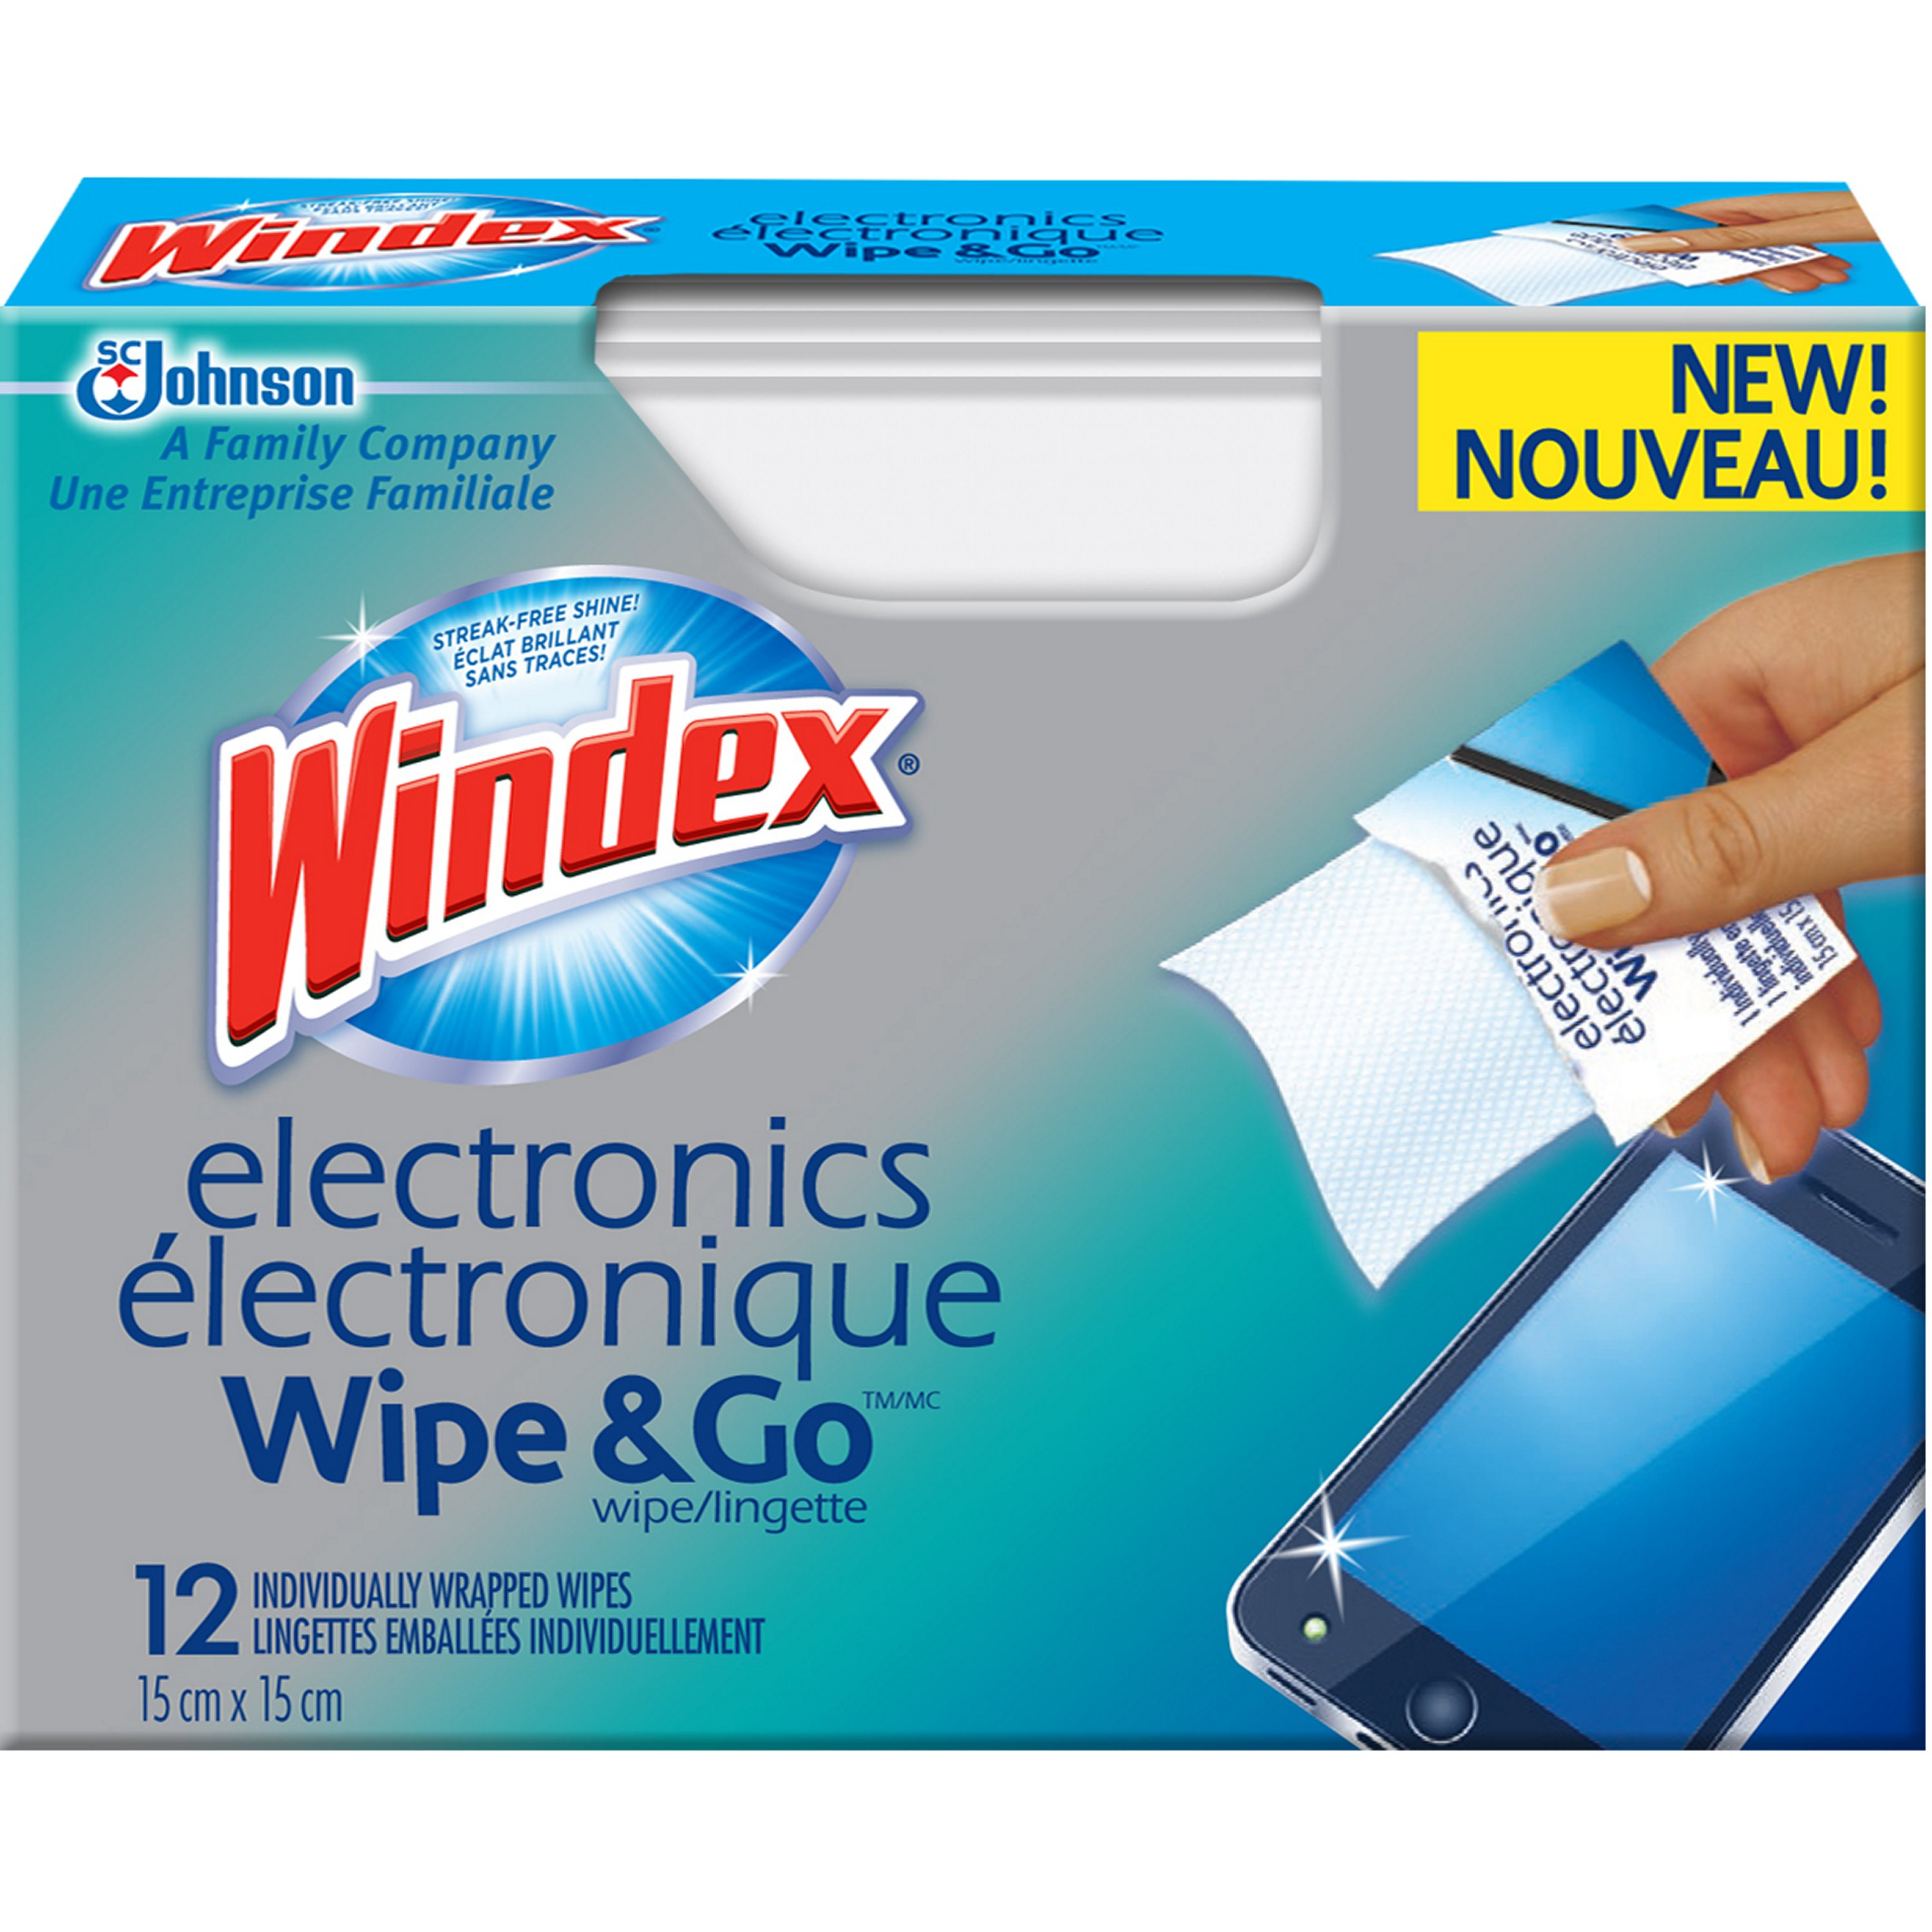 Windex® Electronics Wipe & Go Wipes